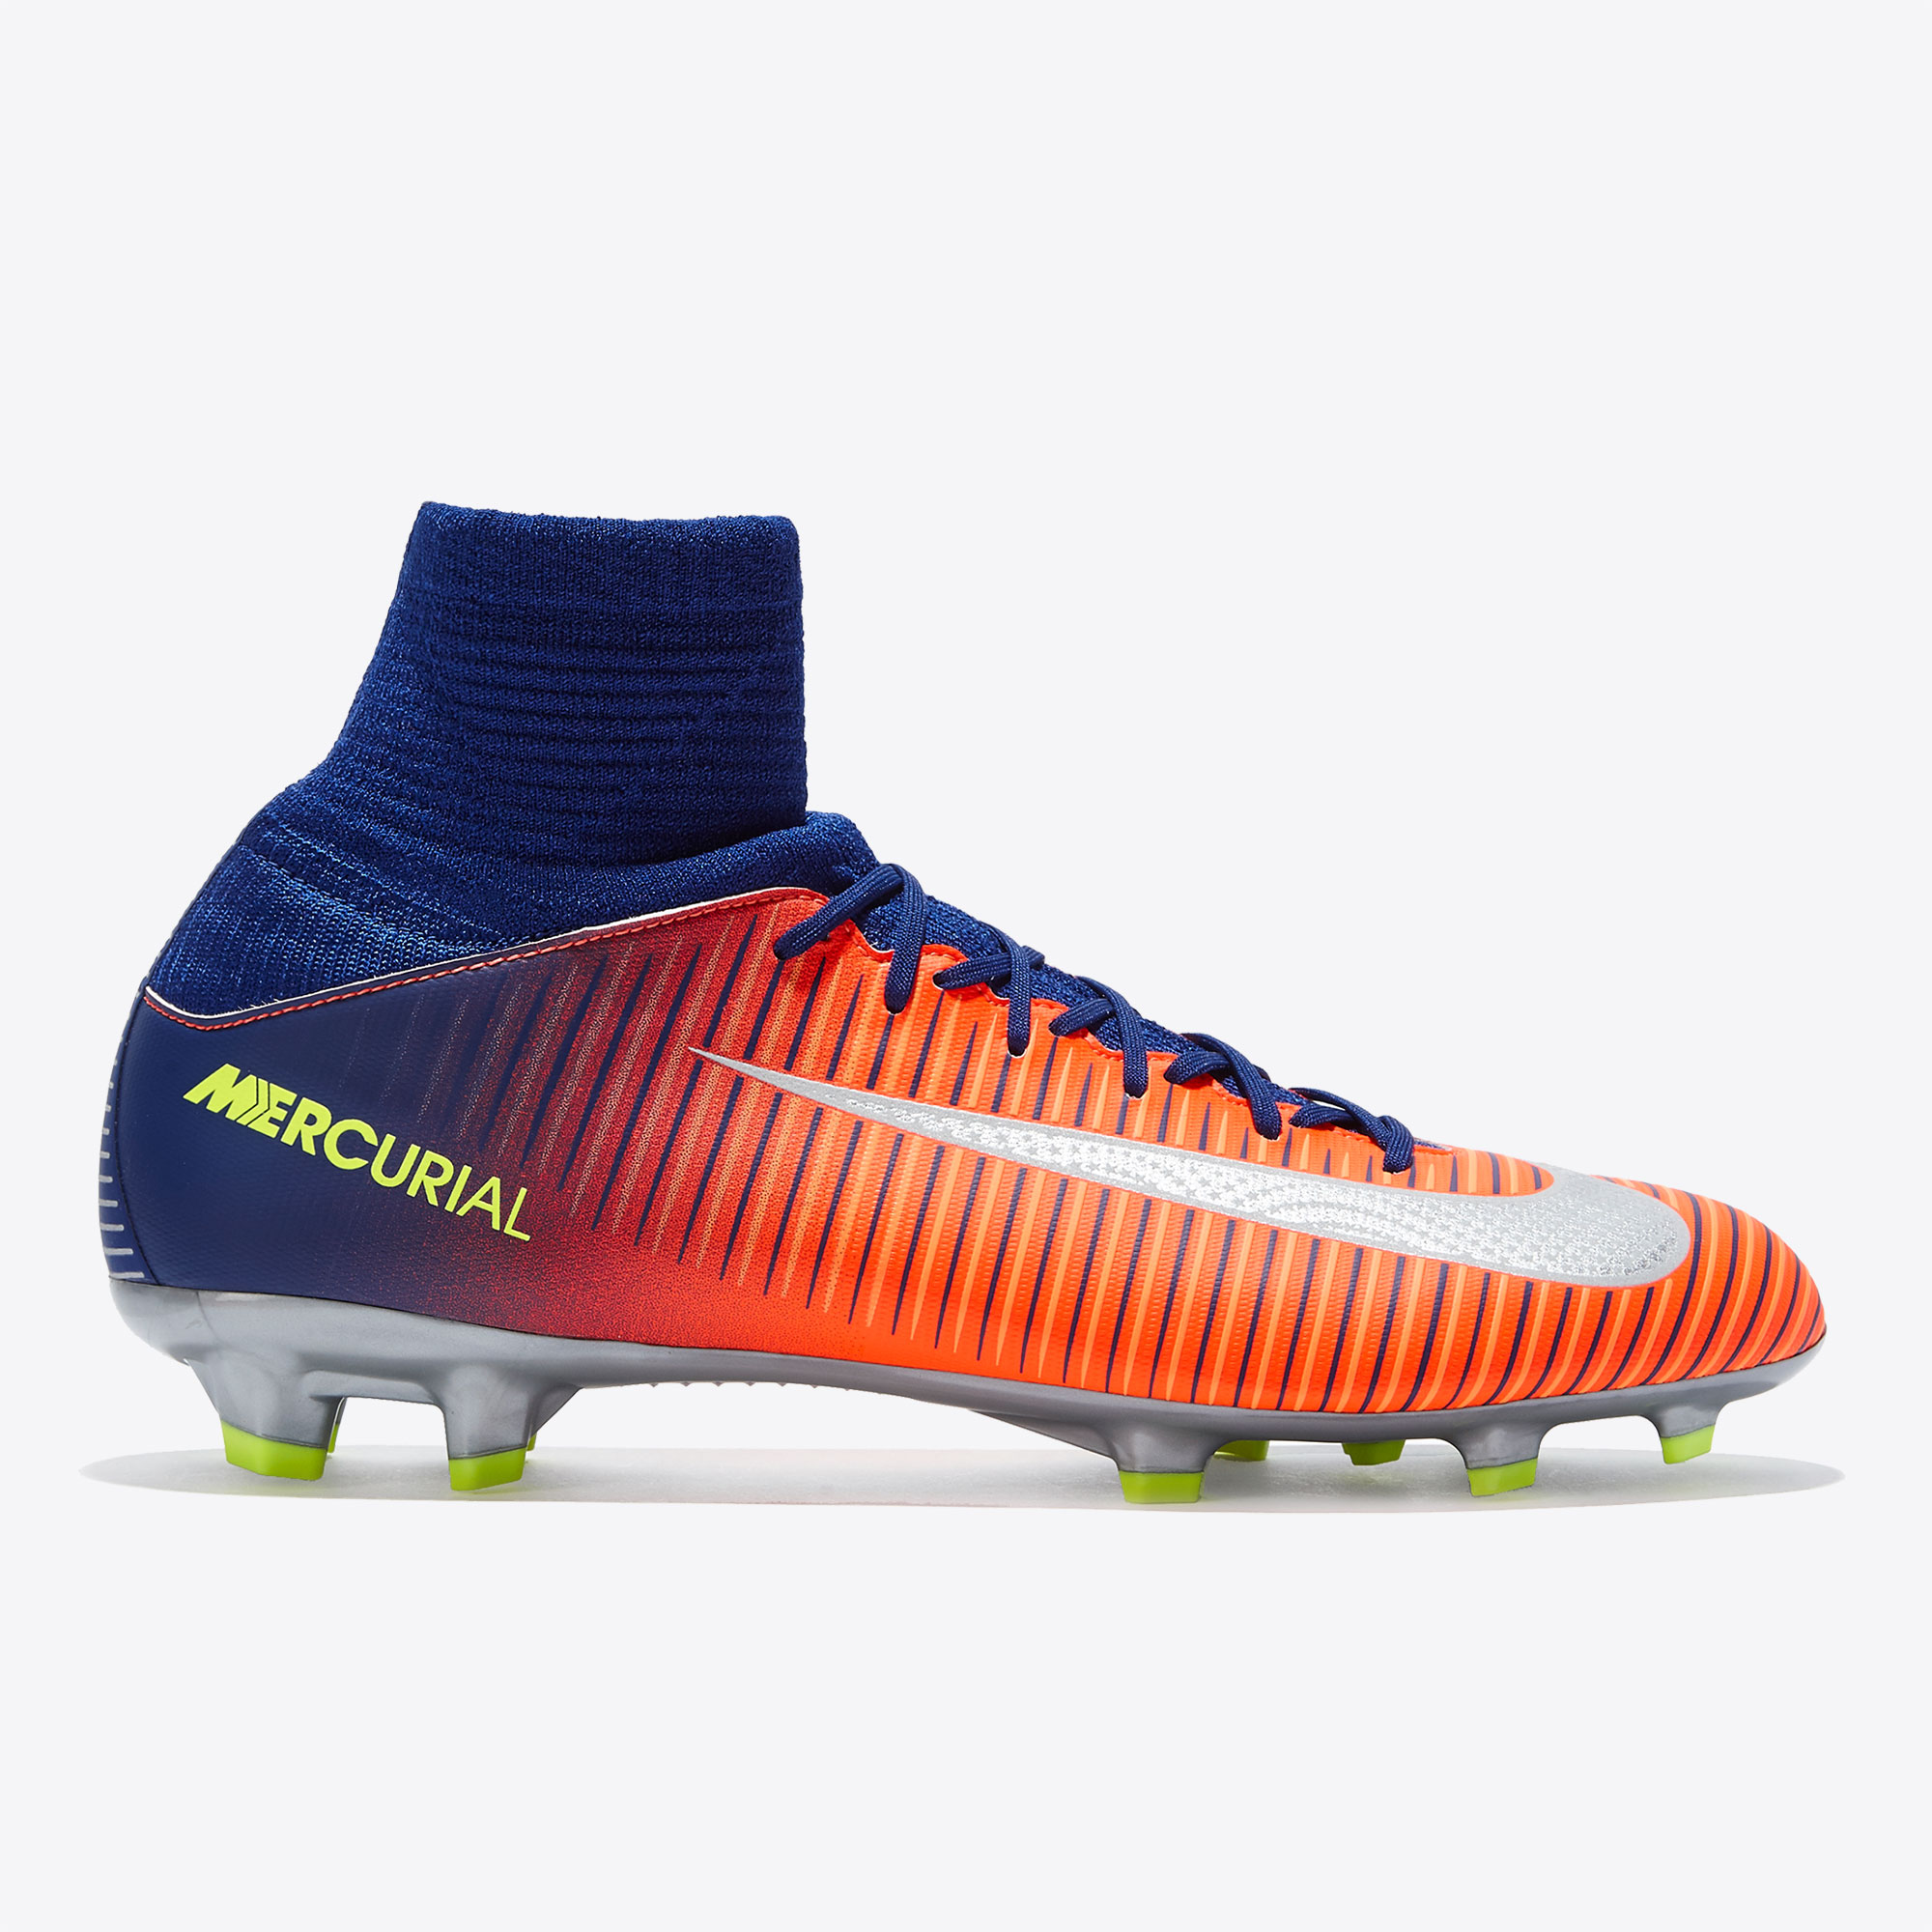 Nike Mercurial Superfly V FG Deep Royal Blue